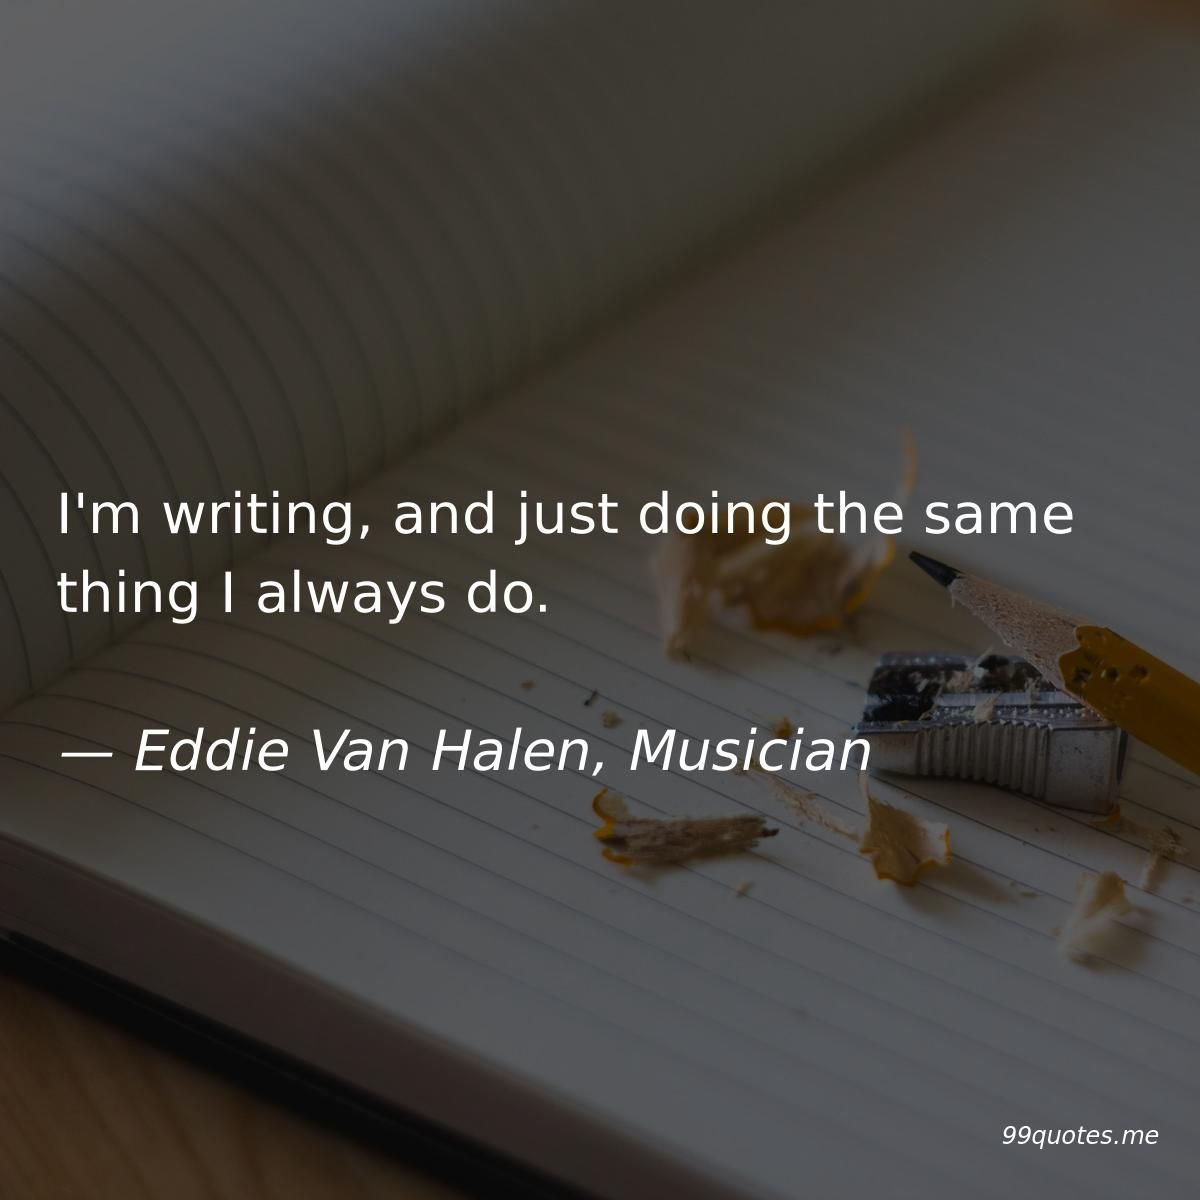 Pin On Quotes About Writing